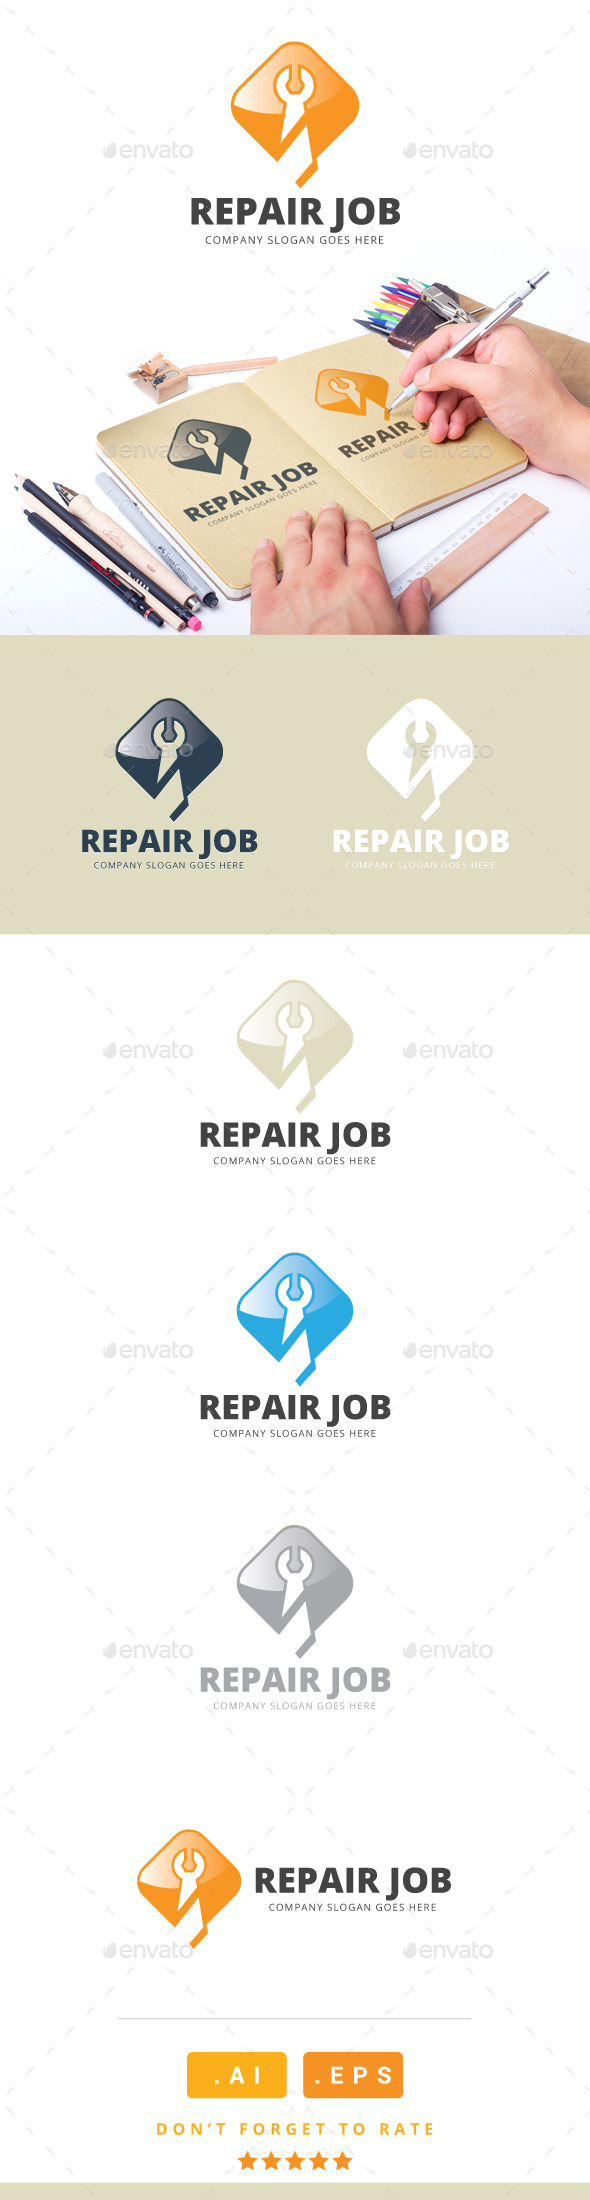 GraphicRiver Repair Job Logo 11166664